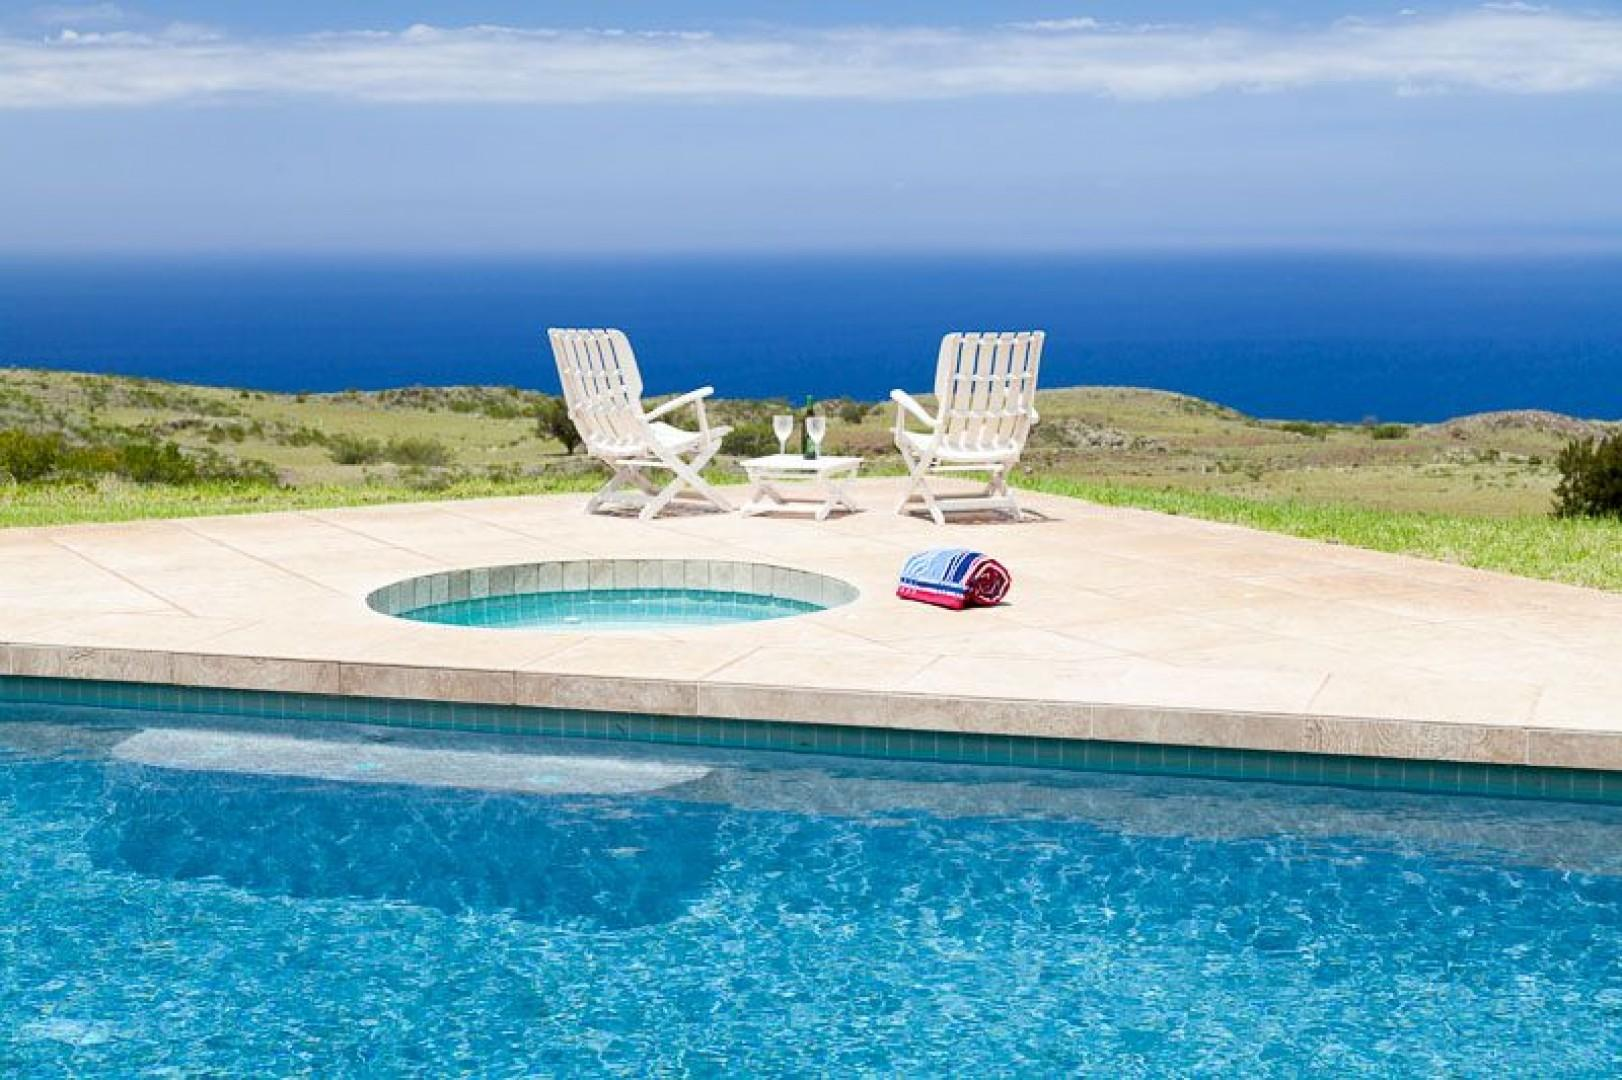 Step out of the pool into the jacuzzi or to view the sunset